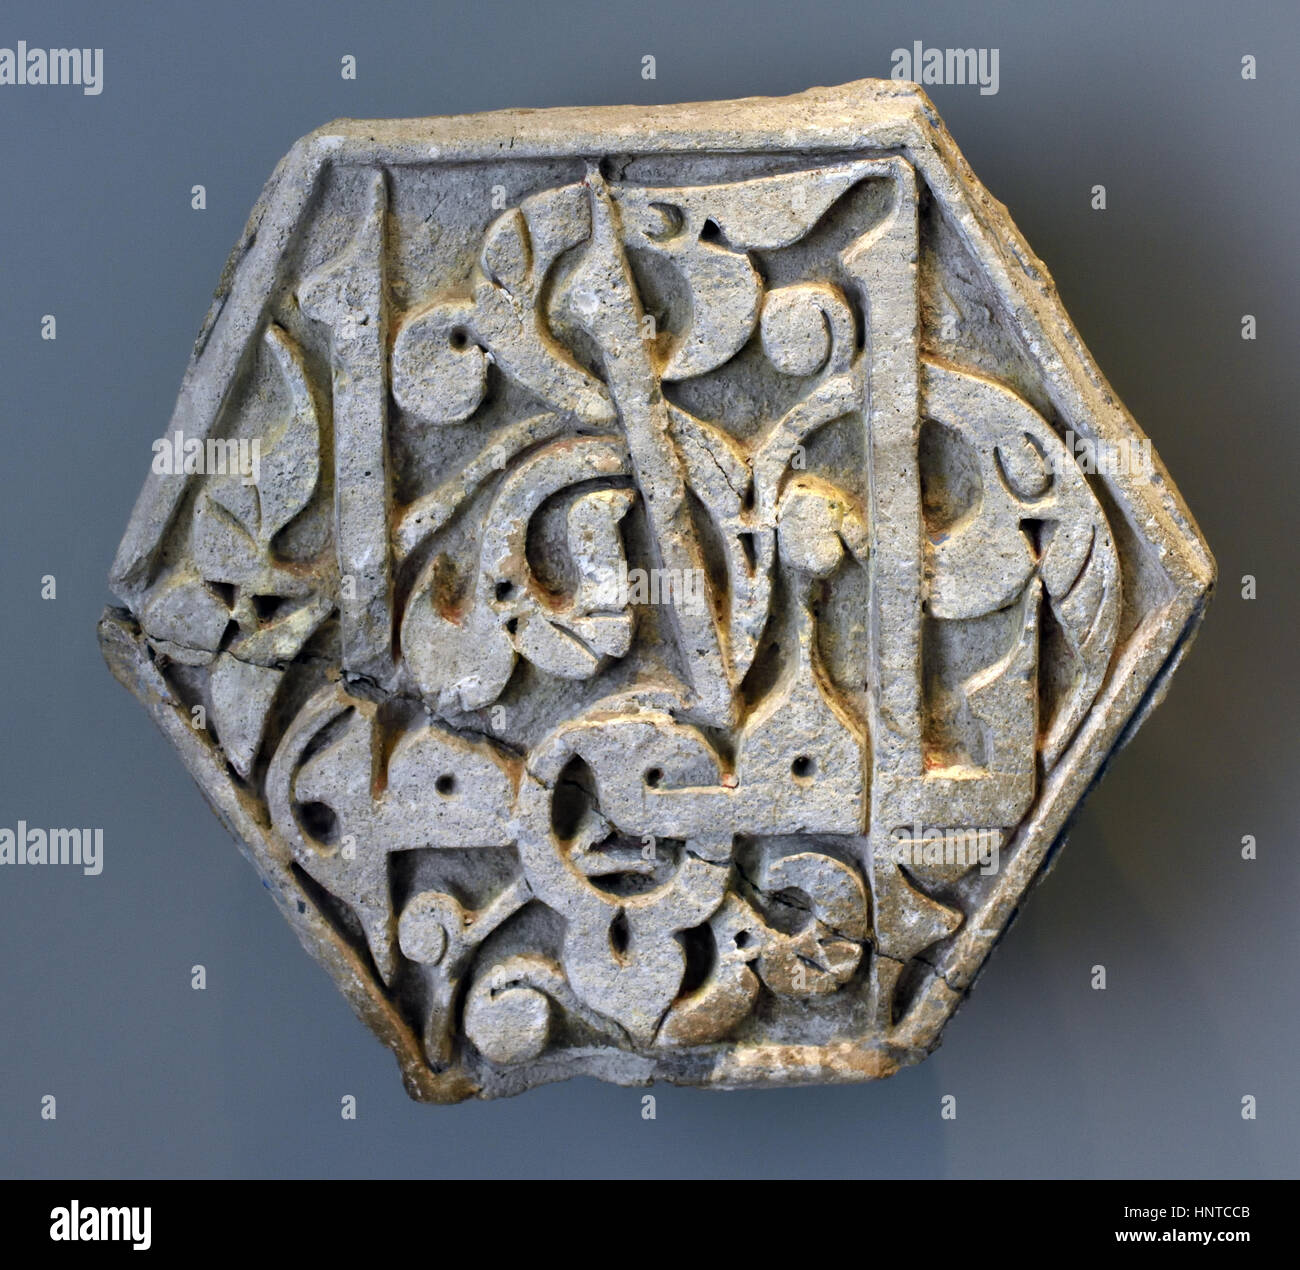 Hexagonal tile with an Arabic inscription in the Kufi Duktus 1500 Iran, Iranians, (Kufic is the oldest calligraphic - Stock Image